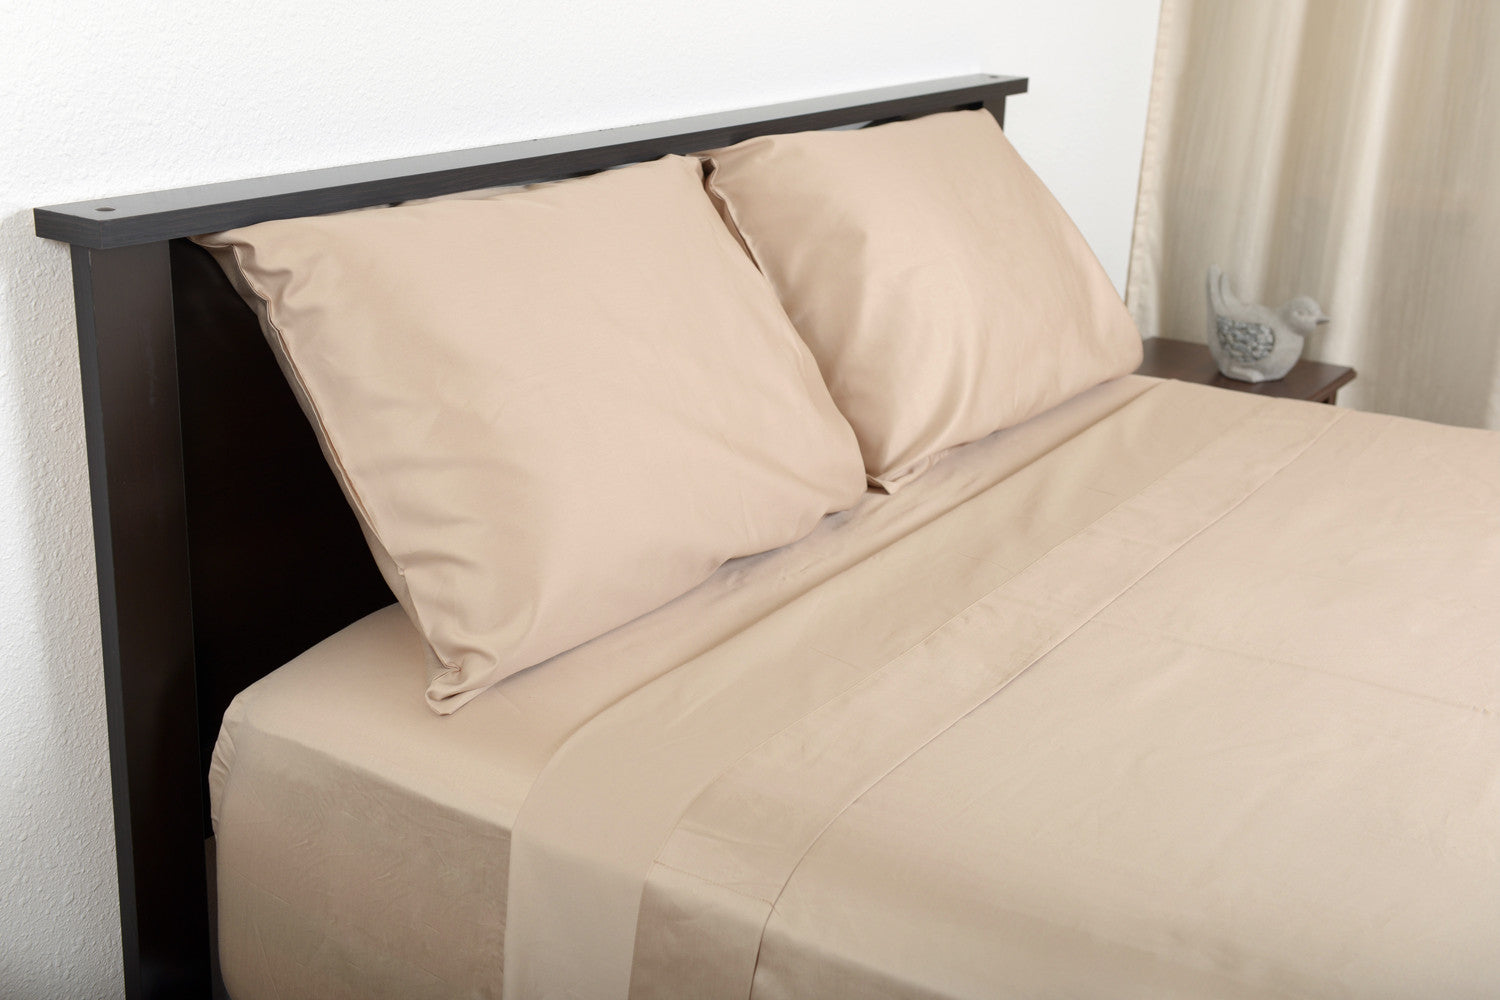 Supreme sateen egyptian cotton sheets stone top side foot view by excess comfort made in usa of fabric made in israel